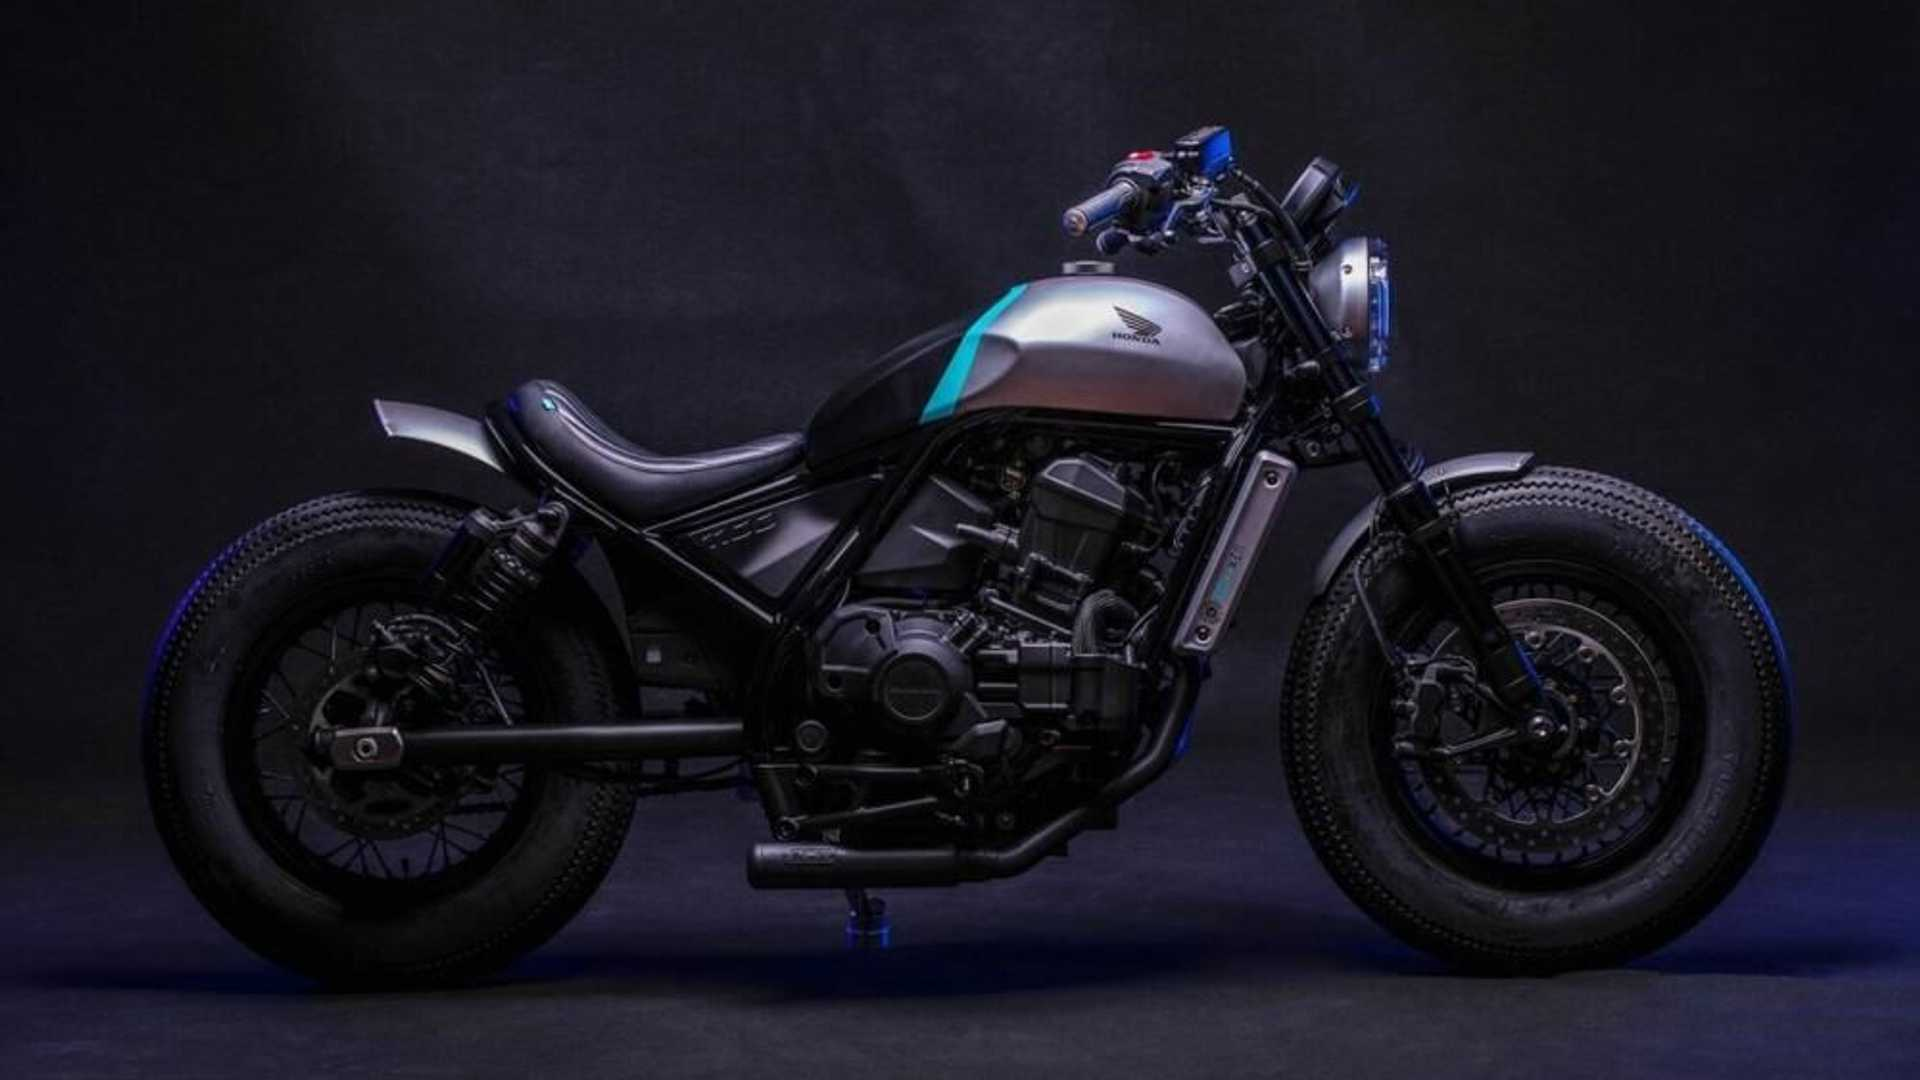 2021 Honda Rebel 1100,2021 Honda Rebel 1100,2021 honda rebel 1100 price,2021 honda rebel 1100 top speed,2021 honda rebel 1100 for sale,2021 honda rebel 1100 specs, 2021 honda rebel 1100 accessories,2021 honda rebel 1100 hp,2021 honda rebel 1100 horsepower,2021 honda rebel 1100 review,2021 honda rebel 1100 dct for sale